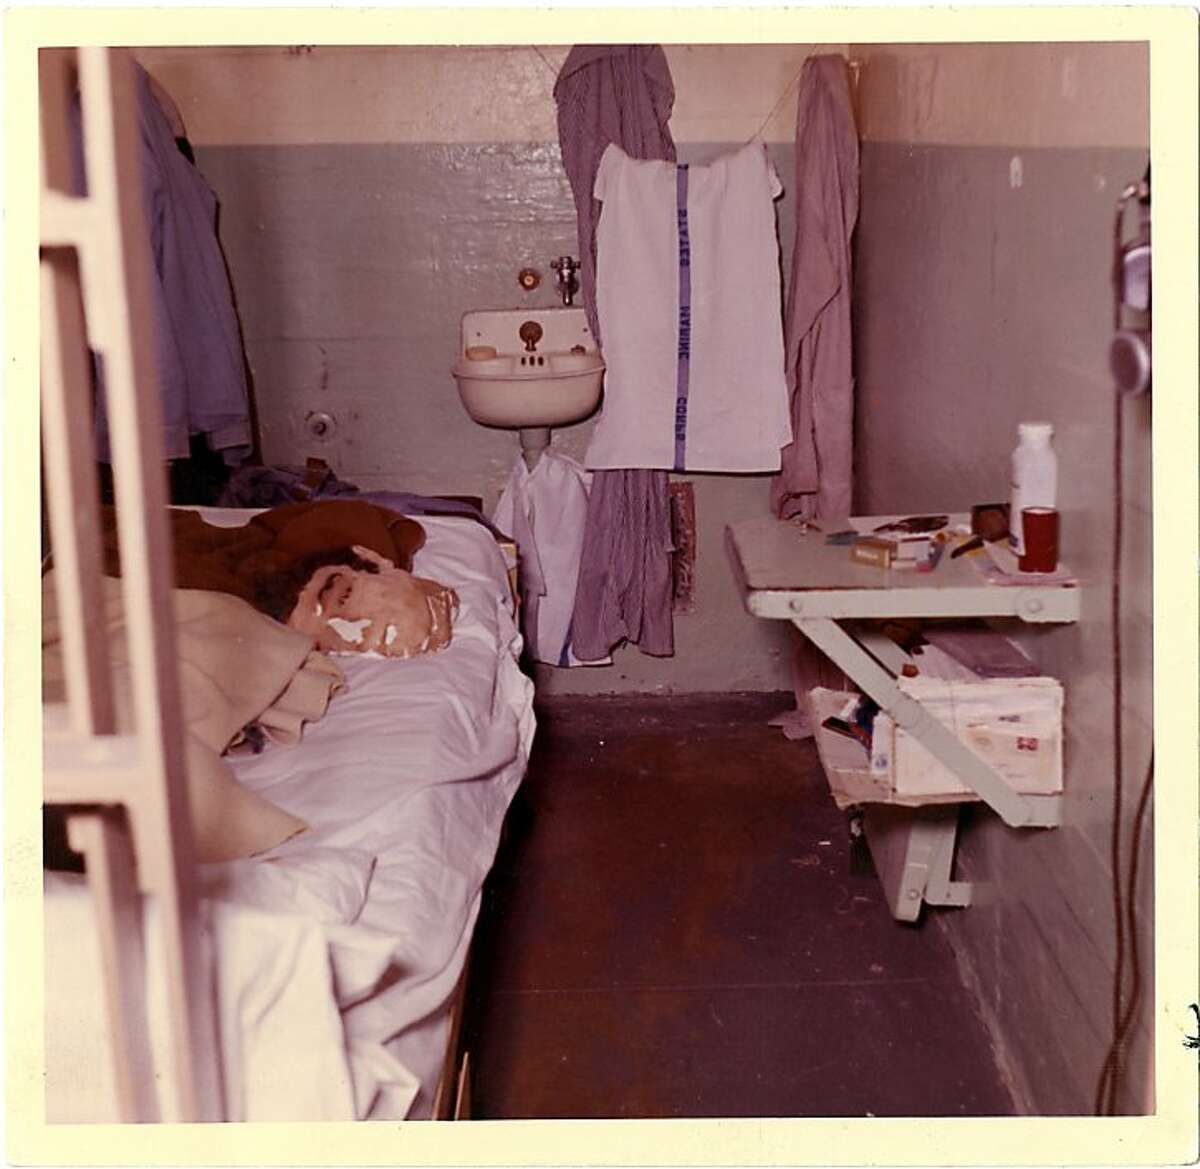 On the morning of June 12, 1962, Alcatraz guards discovered that all that remained of inmates Clarence Anglin, John Anglin and Frank Morris were three dummy heads made of soap, toilet paper and hair. The men had escaped from their cells by remarkable means...